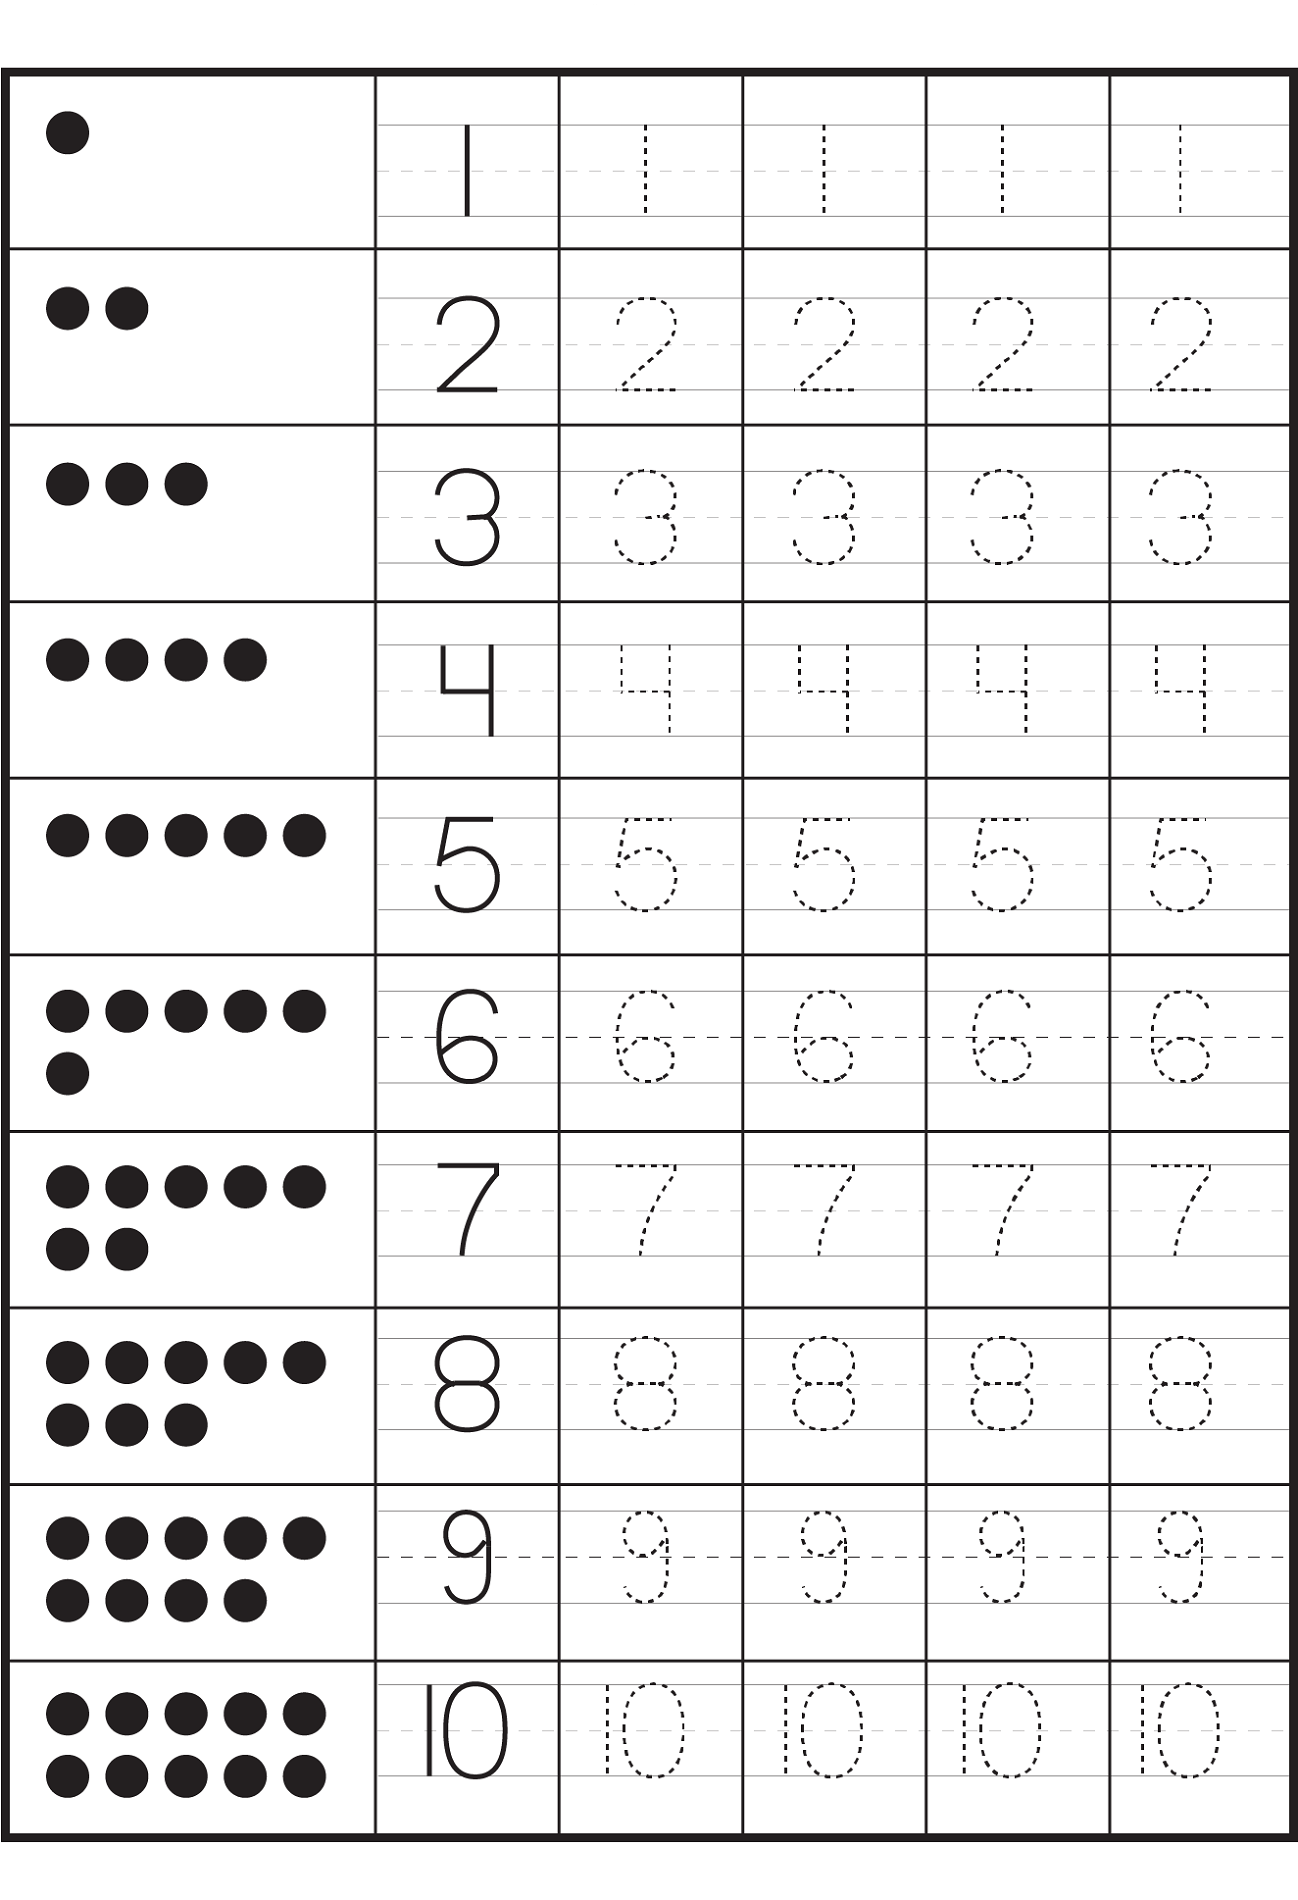 Worksheets Number Tracing Worksheets For Kindergarten number trace worksheets for kids tracing fun activity fun